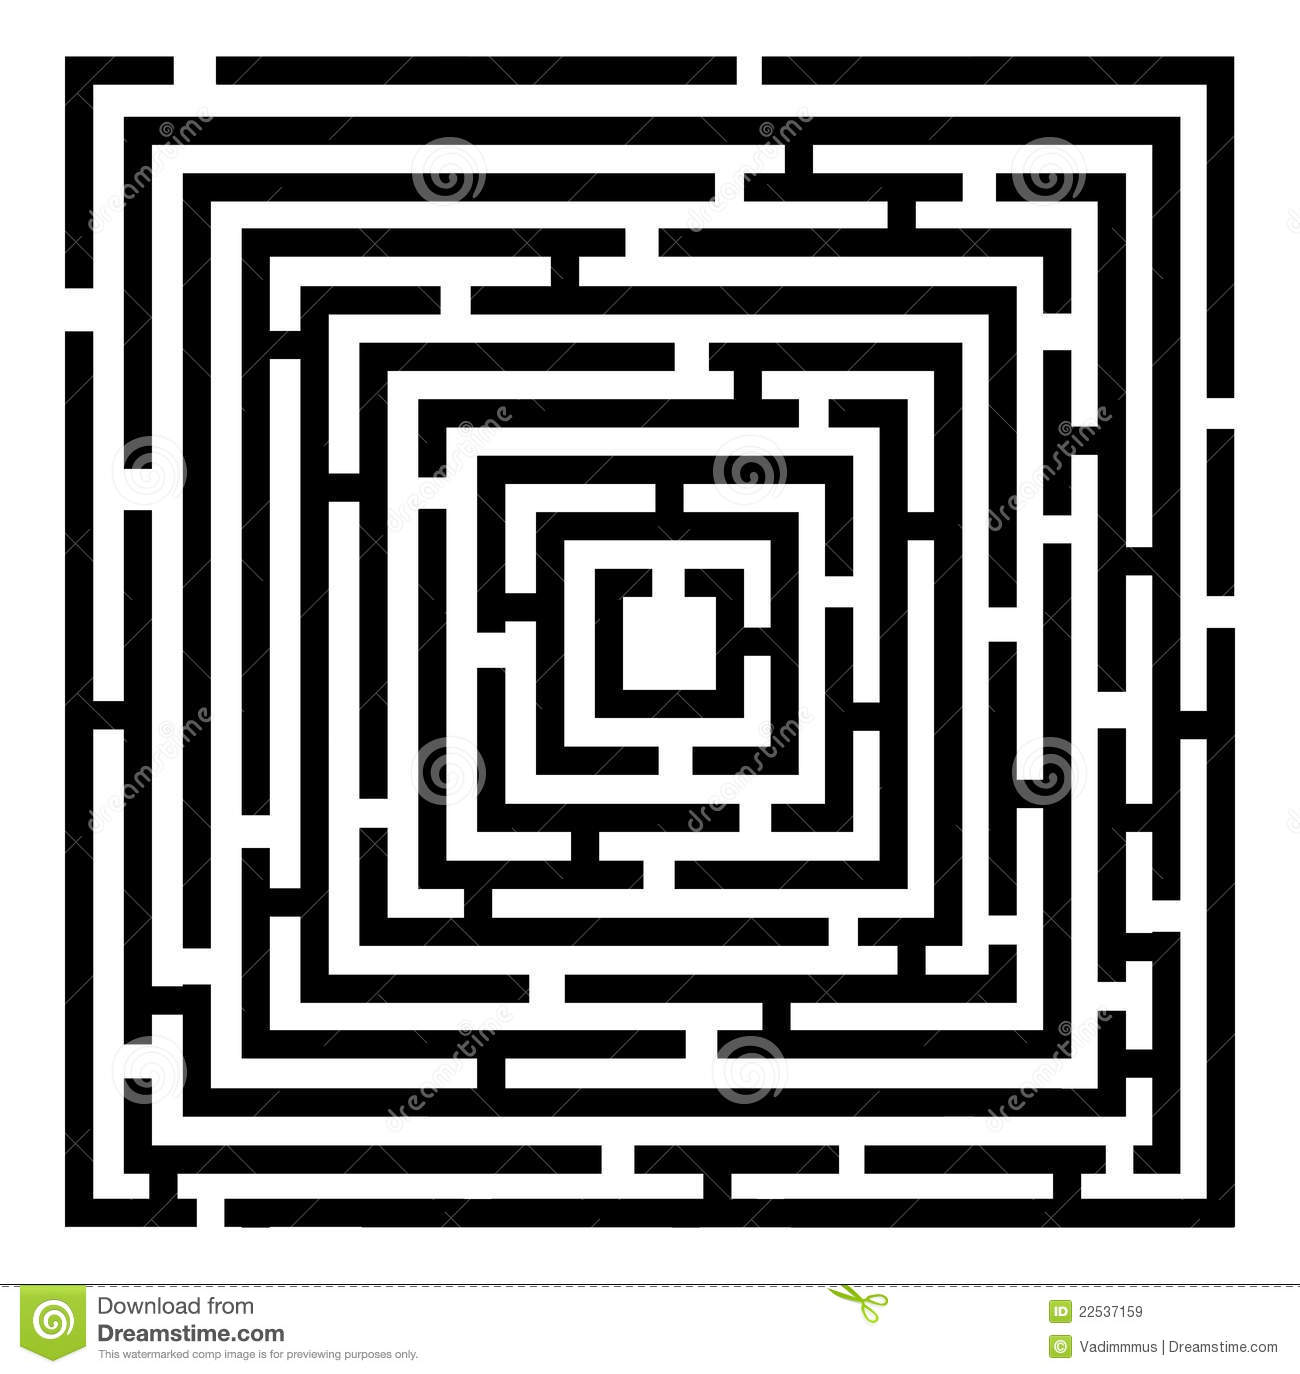 Labyrinth vector image free download free vector download (7 free.